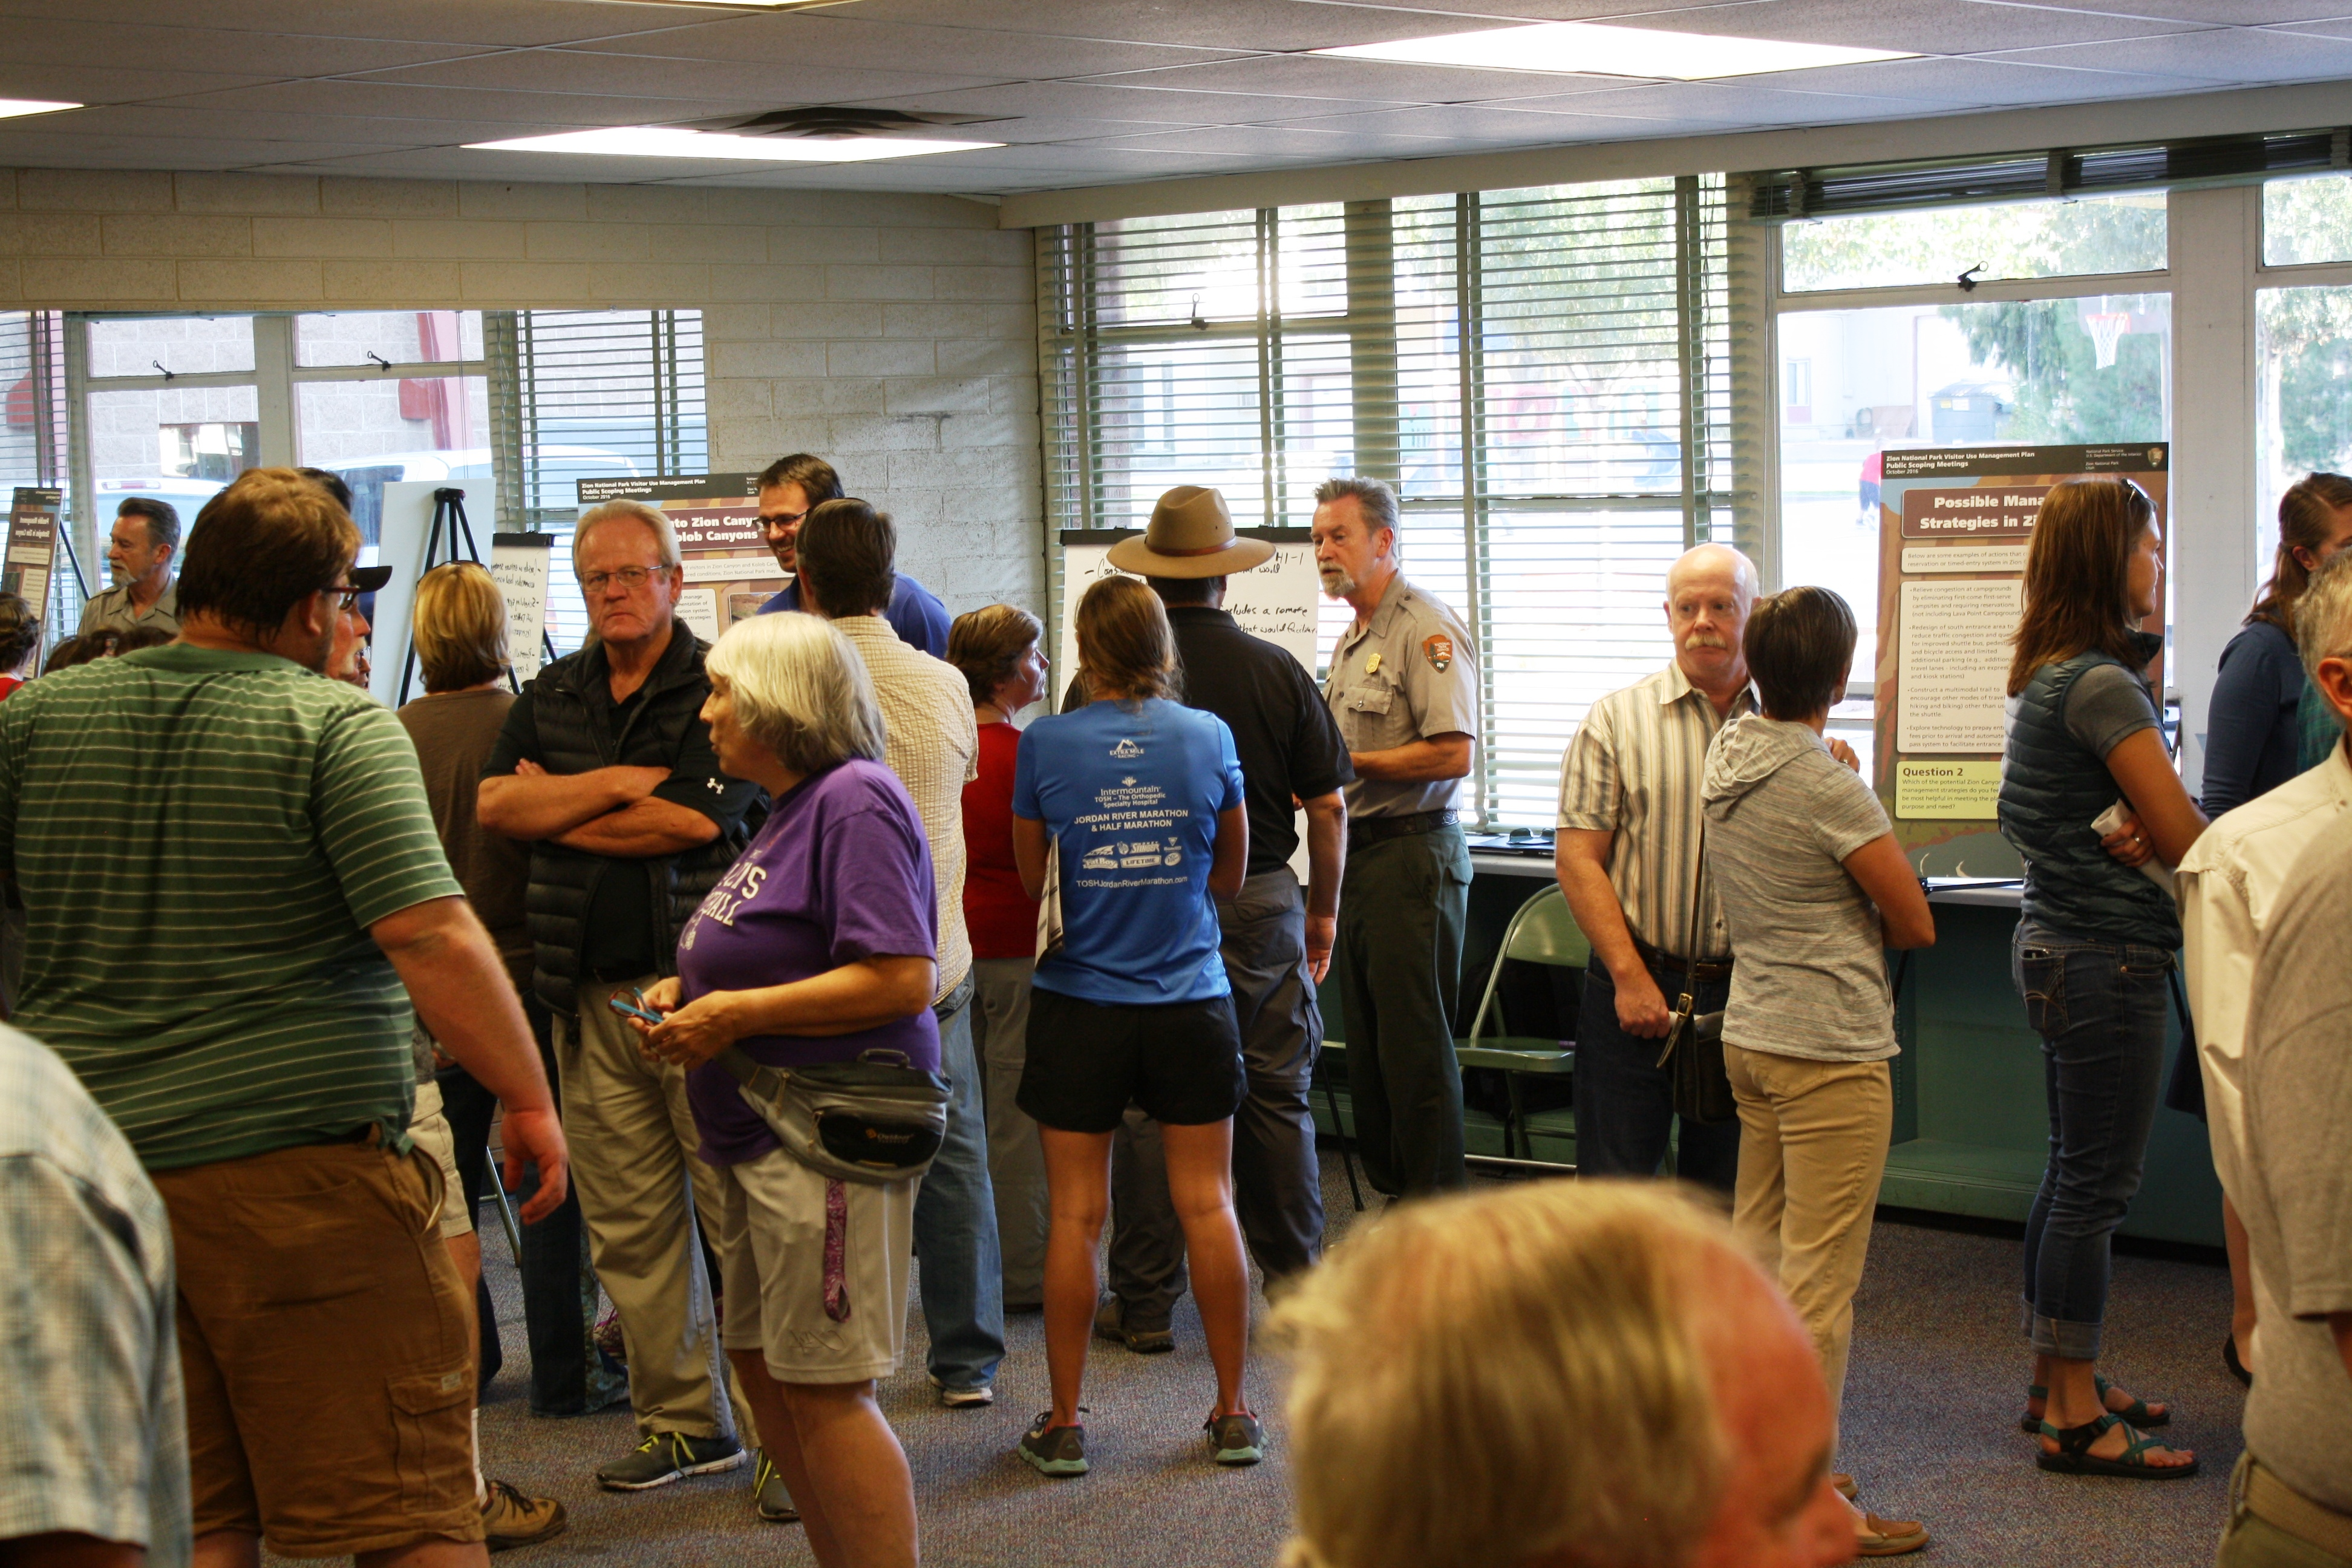 Attendees at a public scoping session for the Zion Visitor Use Management Plan interact with park rangers and provide their input, Hurricane Community Center, Hurricane, Utah, Oct. 25, 2016 | Photo by Reuben Wadsworth, St. George News